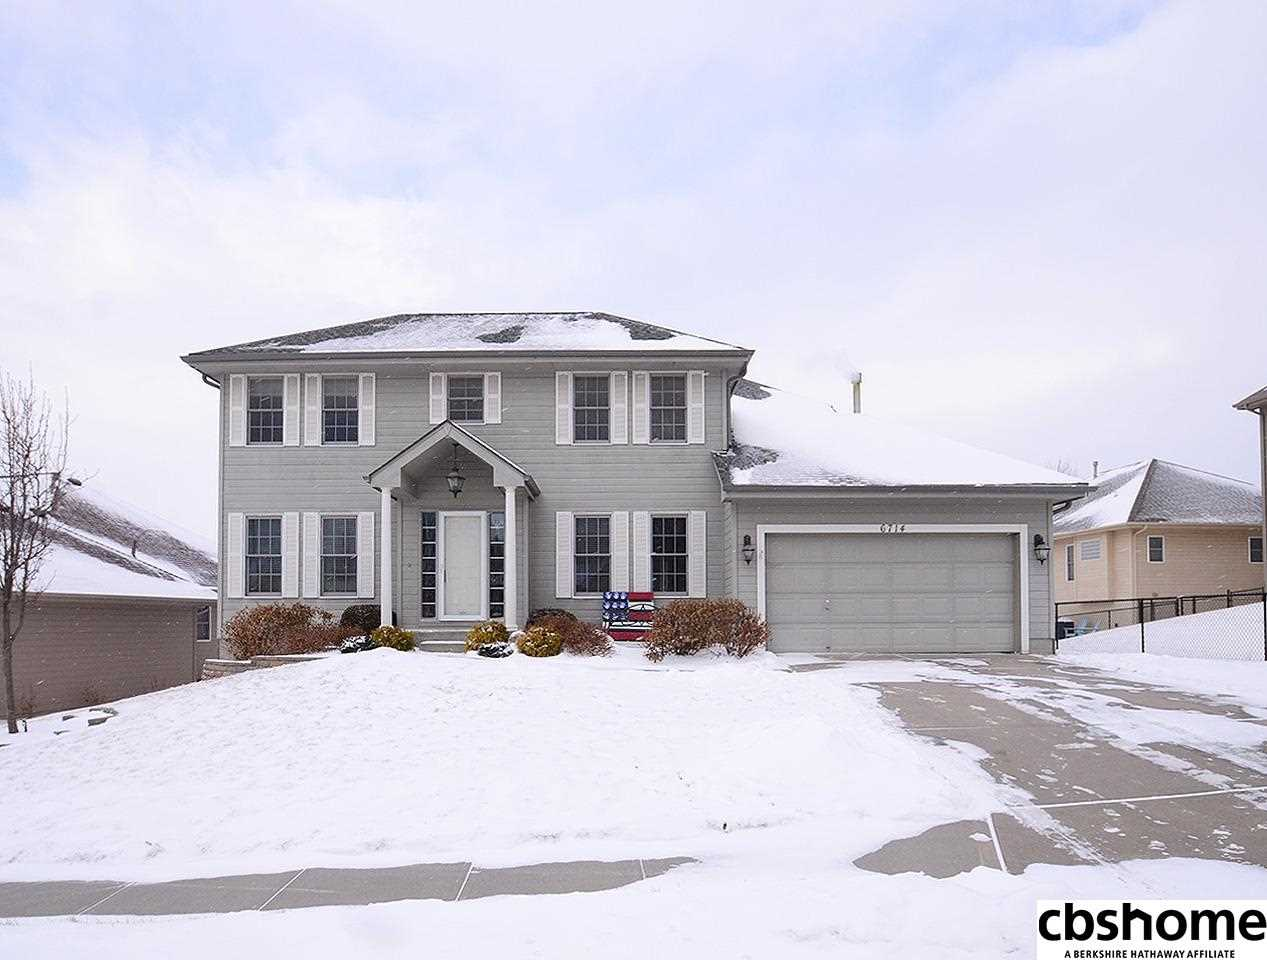 6714 S 164th Omaha, NE 68135 | MLS 21801999 Photo 1